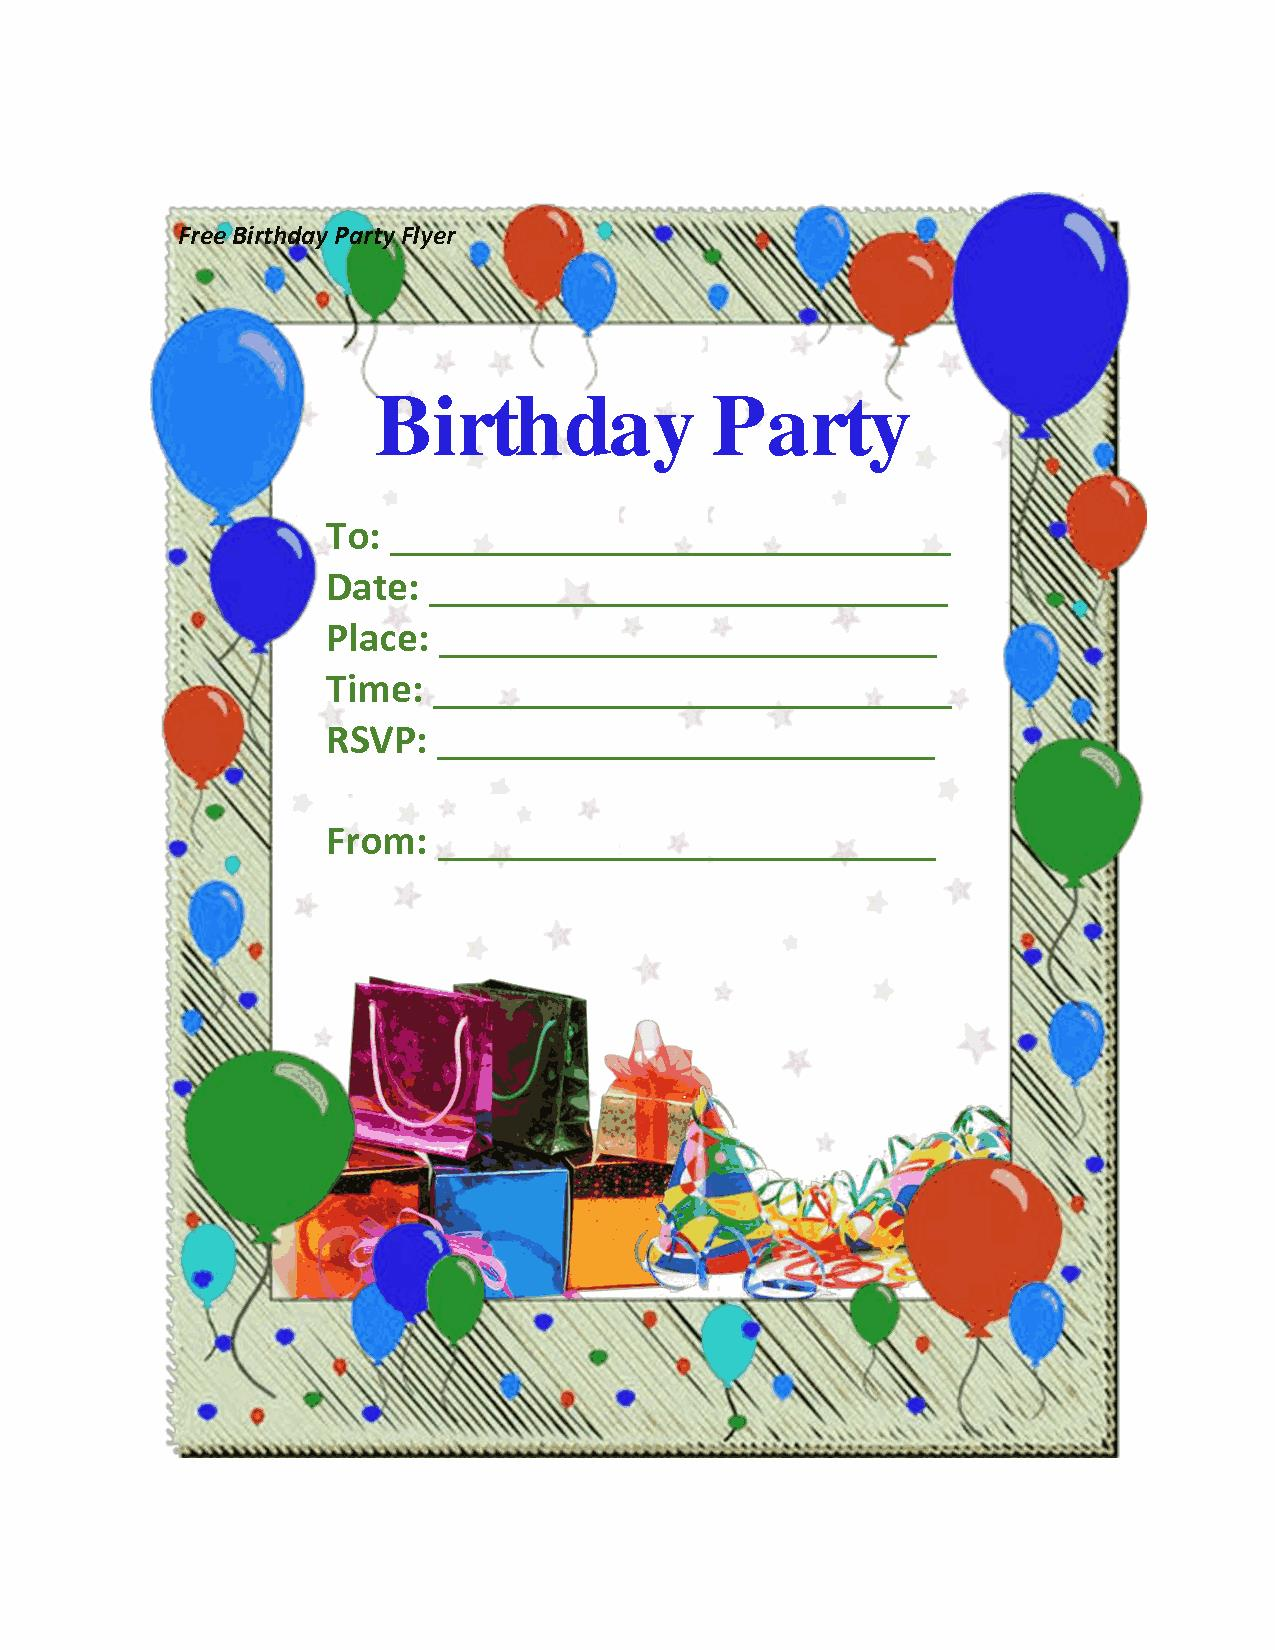 birthday invitation card design online free ; birthday-party-invitation-templates-online-free-With-creativity-hervorragend-perfectly-design-Birthday-Invitations-interesting-3